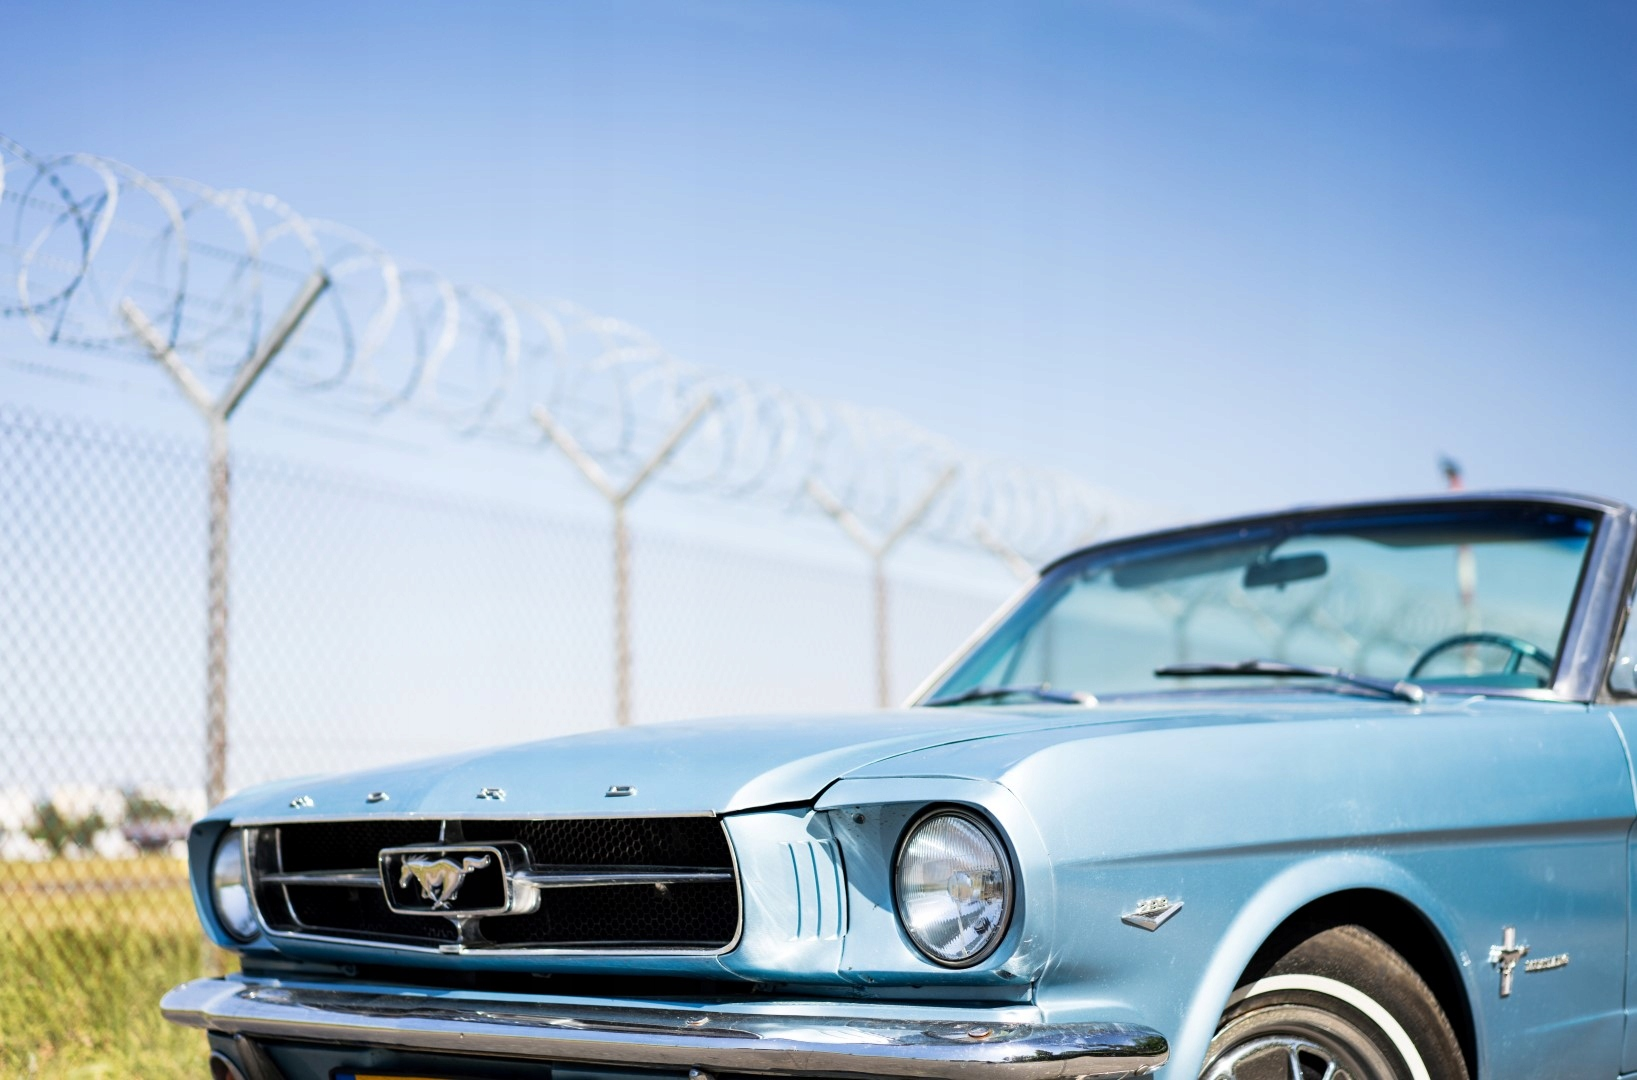 Ford mustang 1965 7422768656